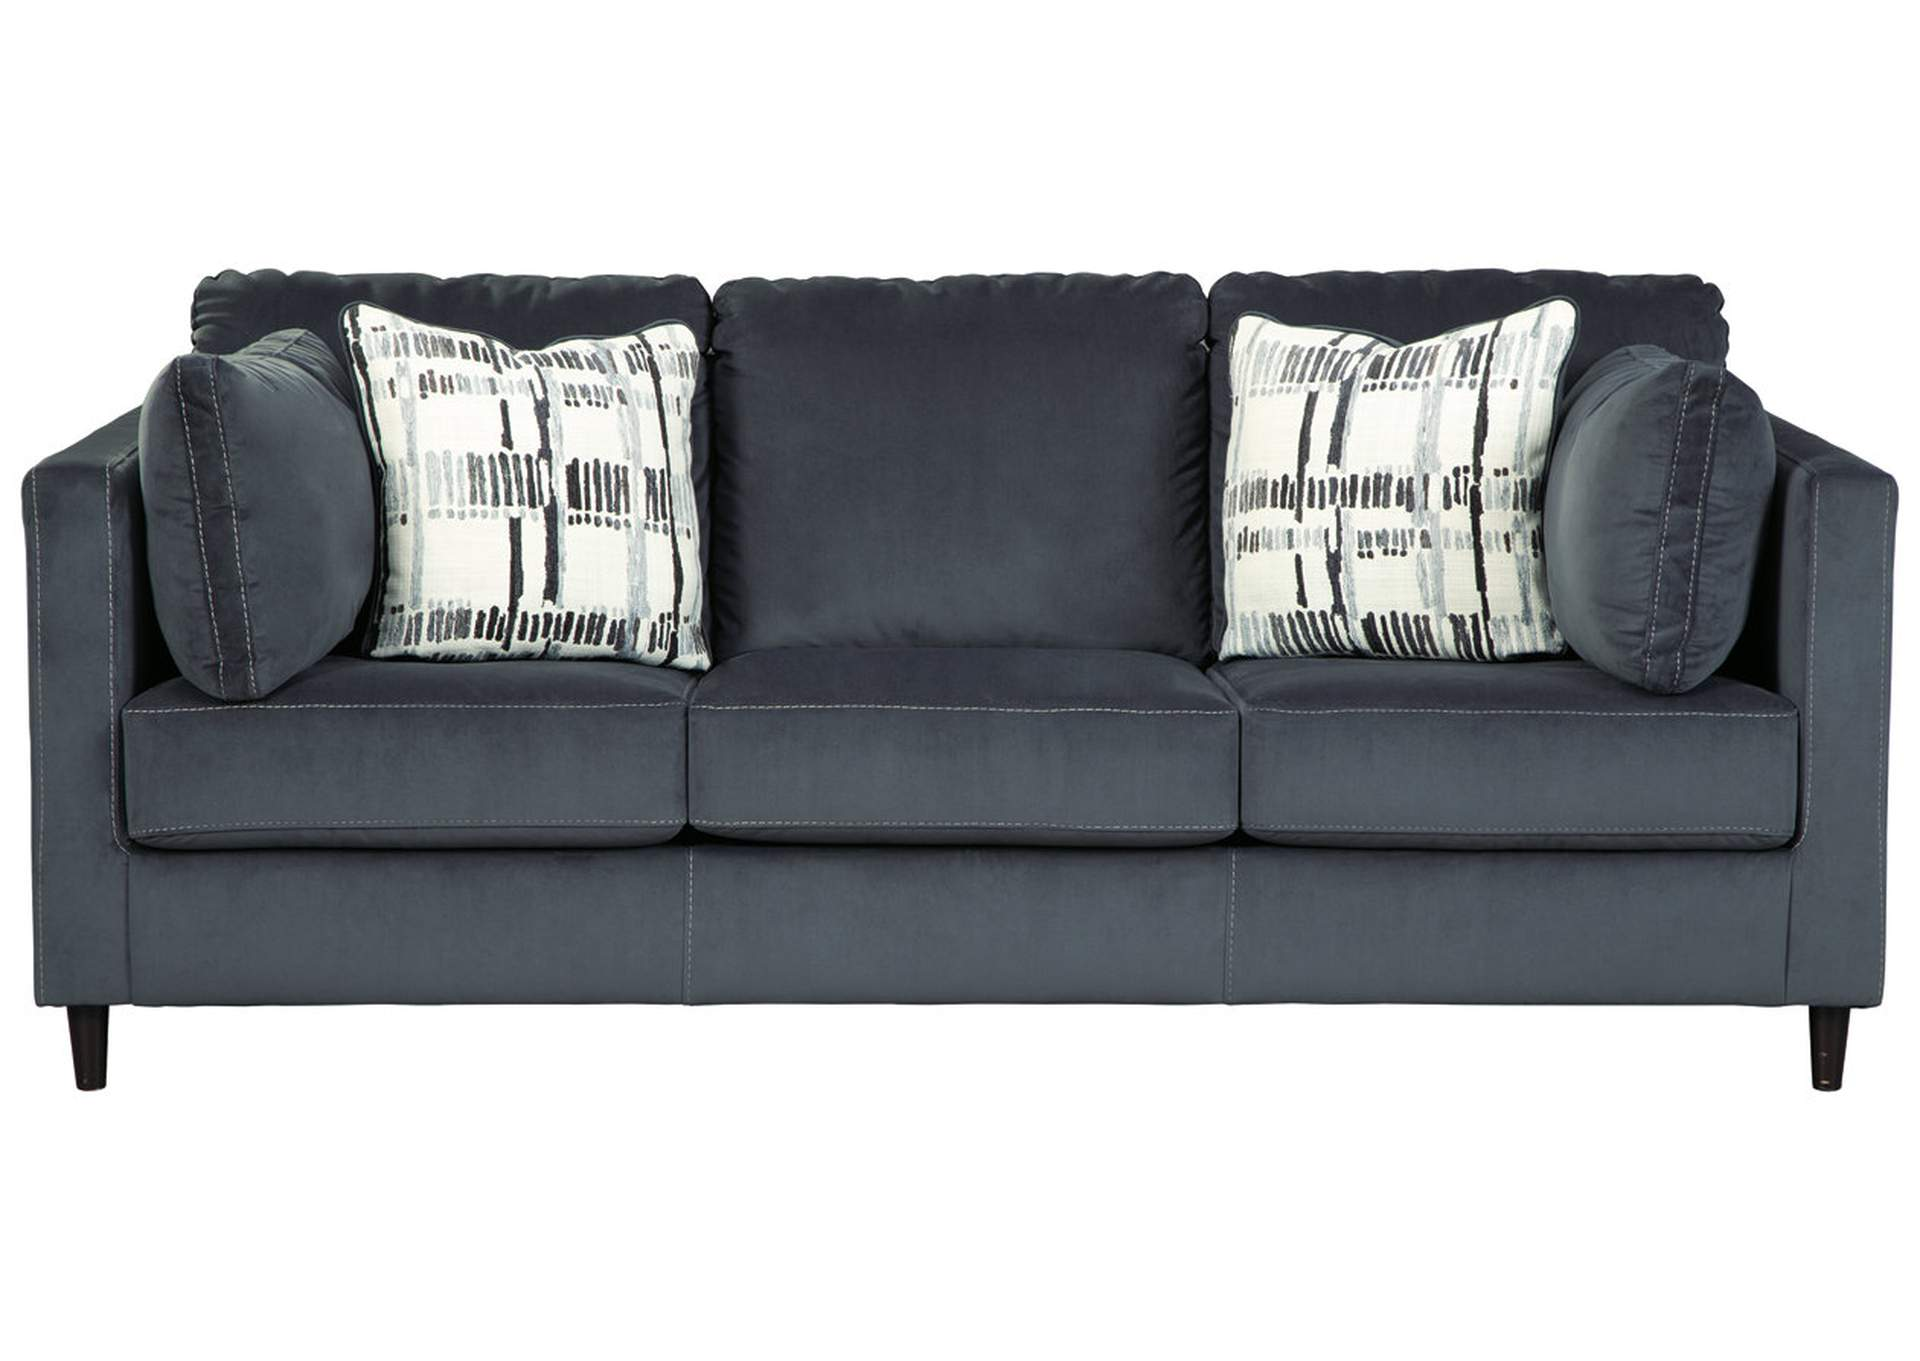 Kennewick Shadow Sofa,Signature Design By Ashley